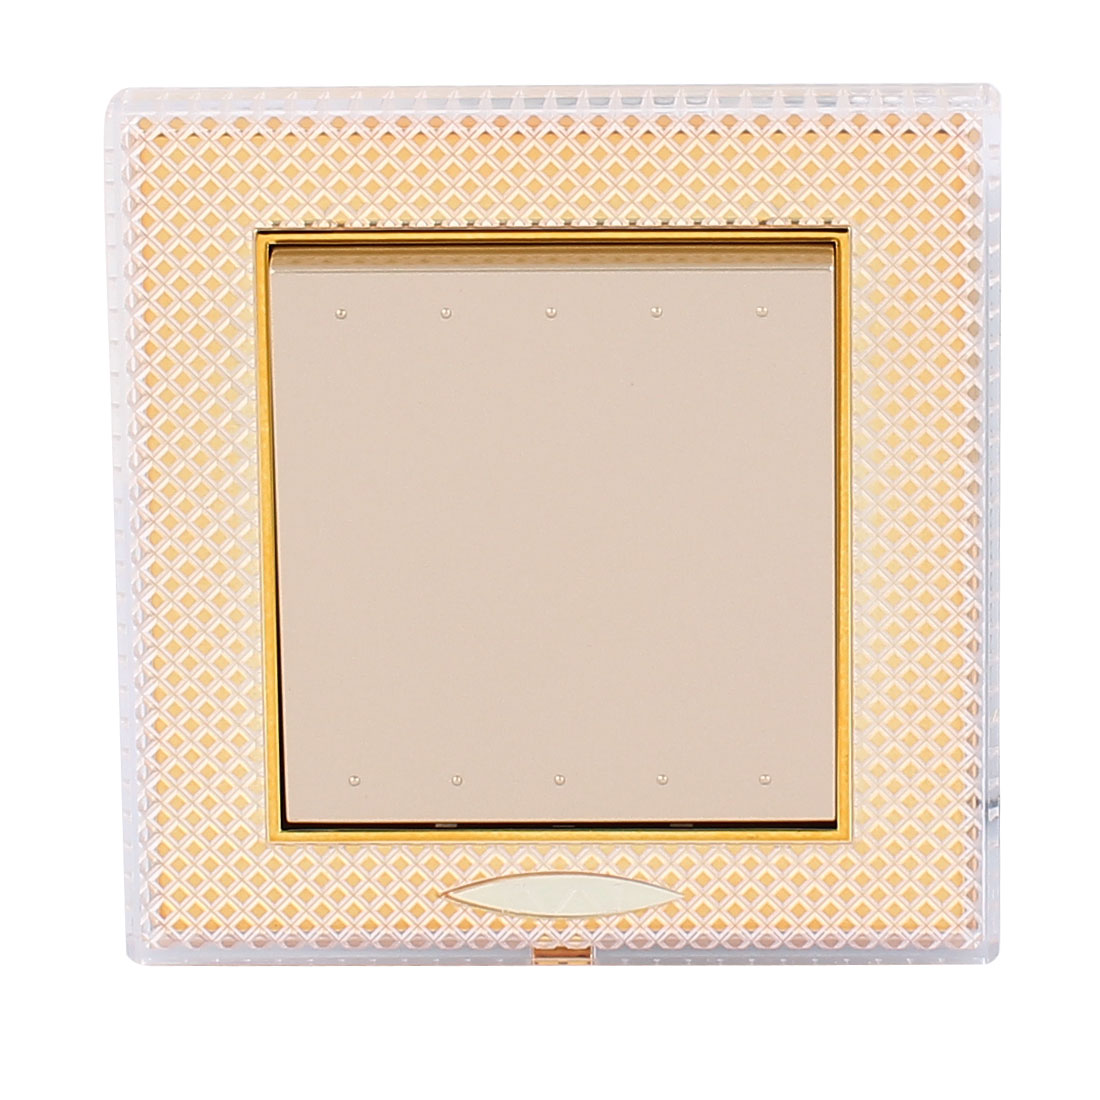 AC 250V 10A 1 Gang 2 way On/Off Press Button Flame Retardant PC Wall Switch Gold